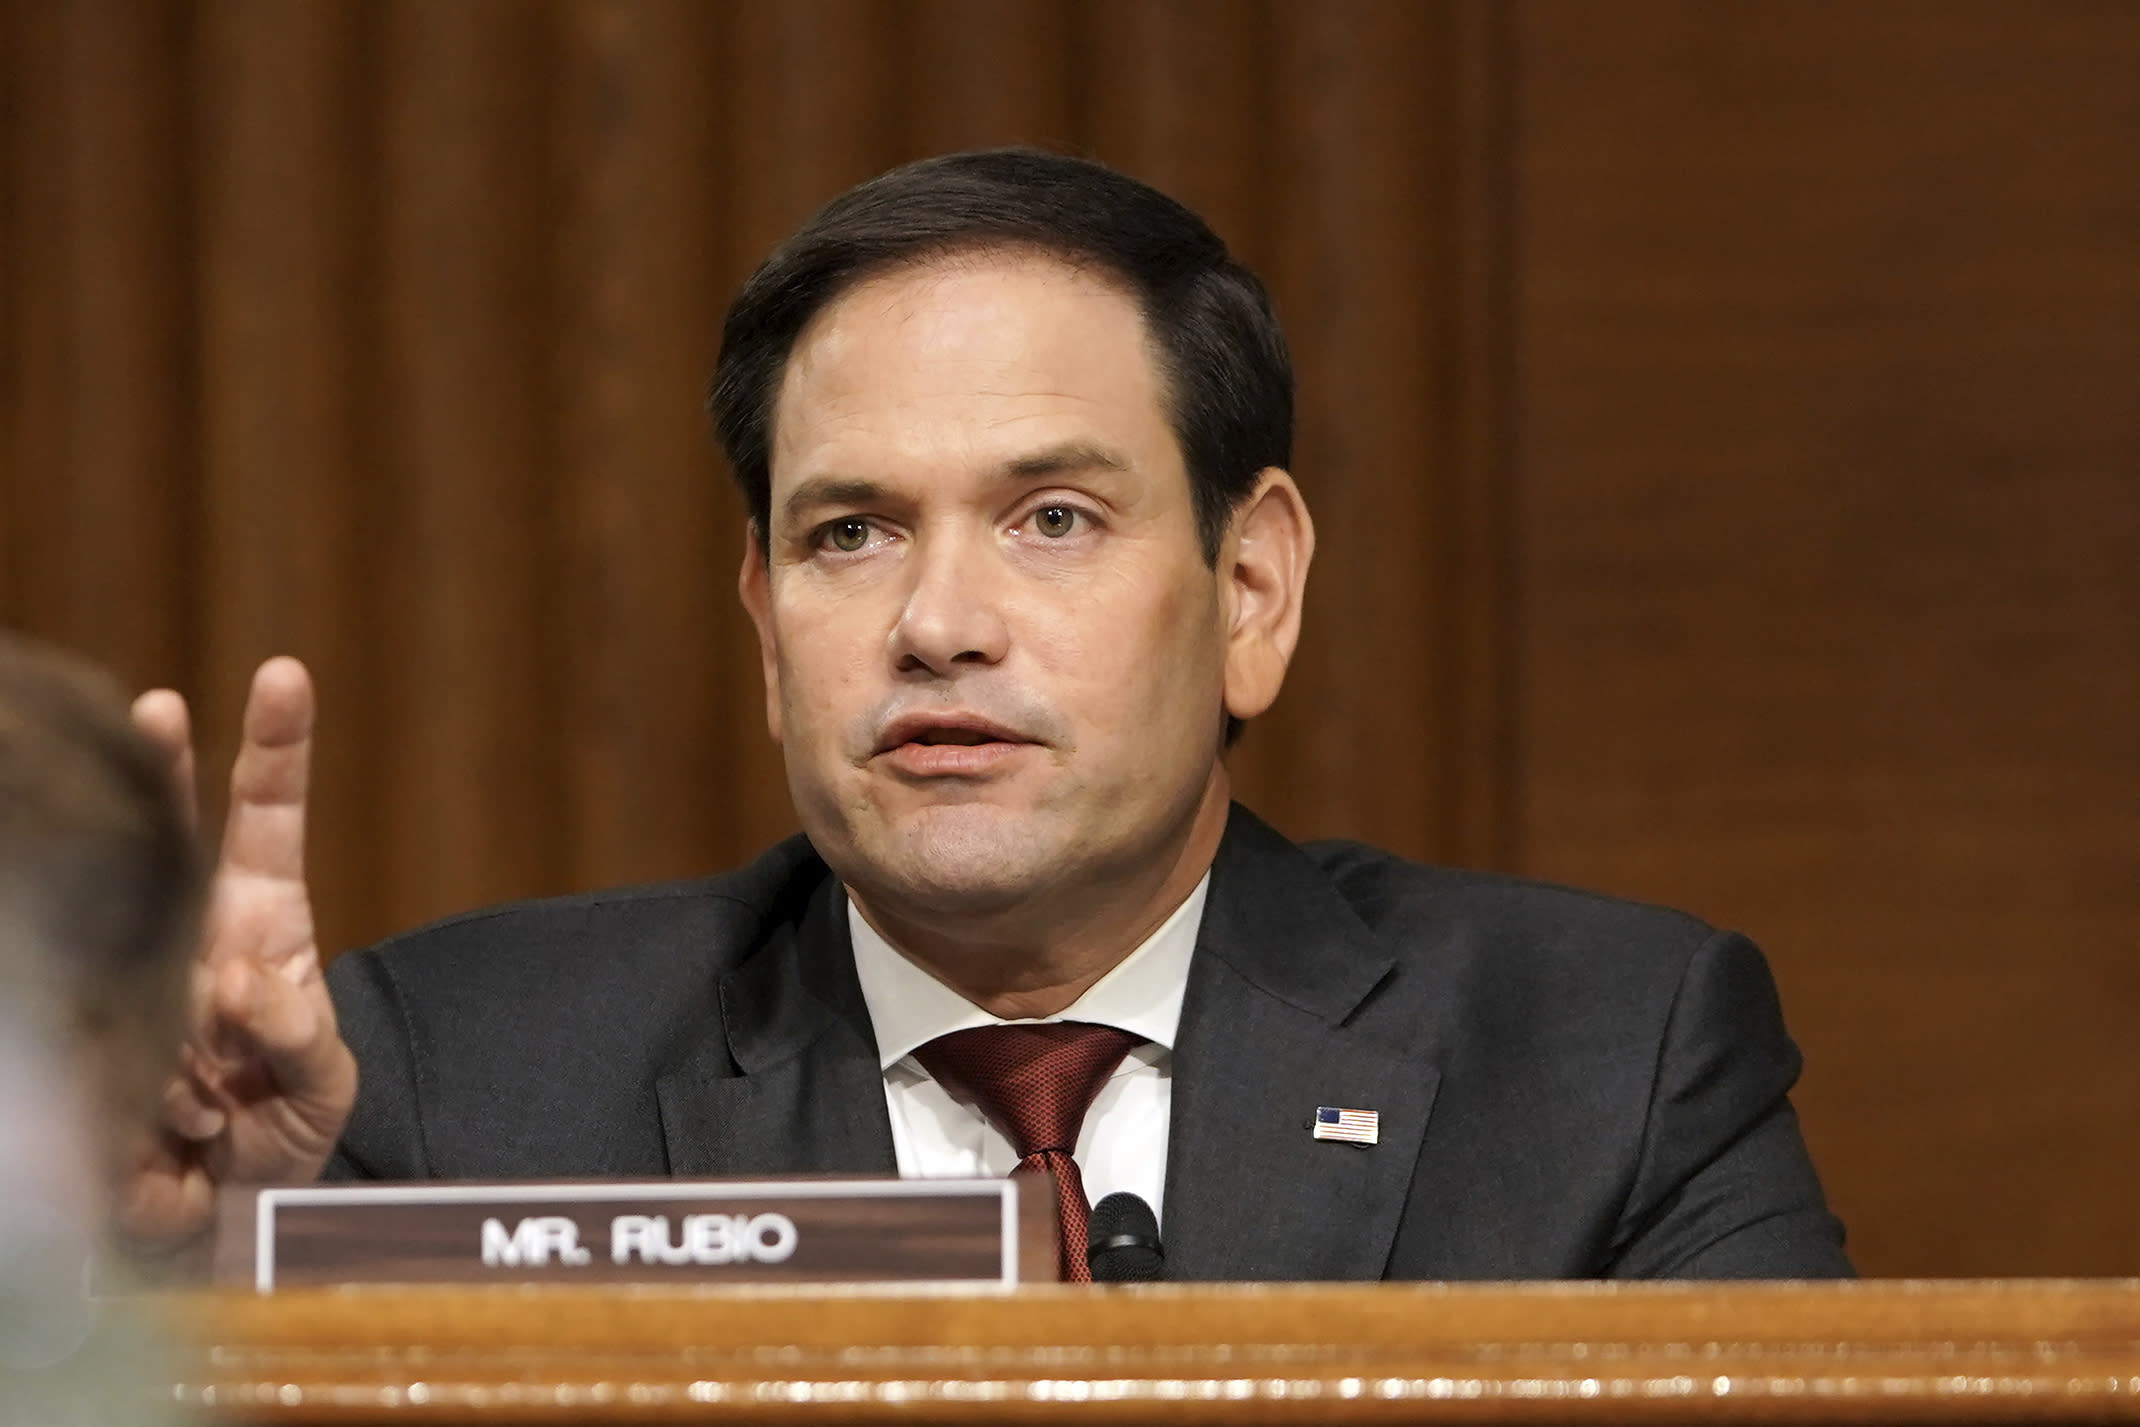 Sen. Marco Rubio, R-Fla., asks a question to Secretary of State Mike Pompeo during a Senate Foreign Relations committee hearing on the State Department's 2021 budget on Capitol Hill Thursday, July 30, 2020, in Washington. (Greg Nash/Pool via AP)